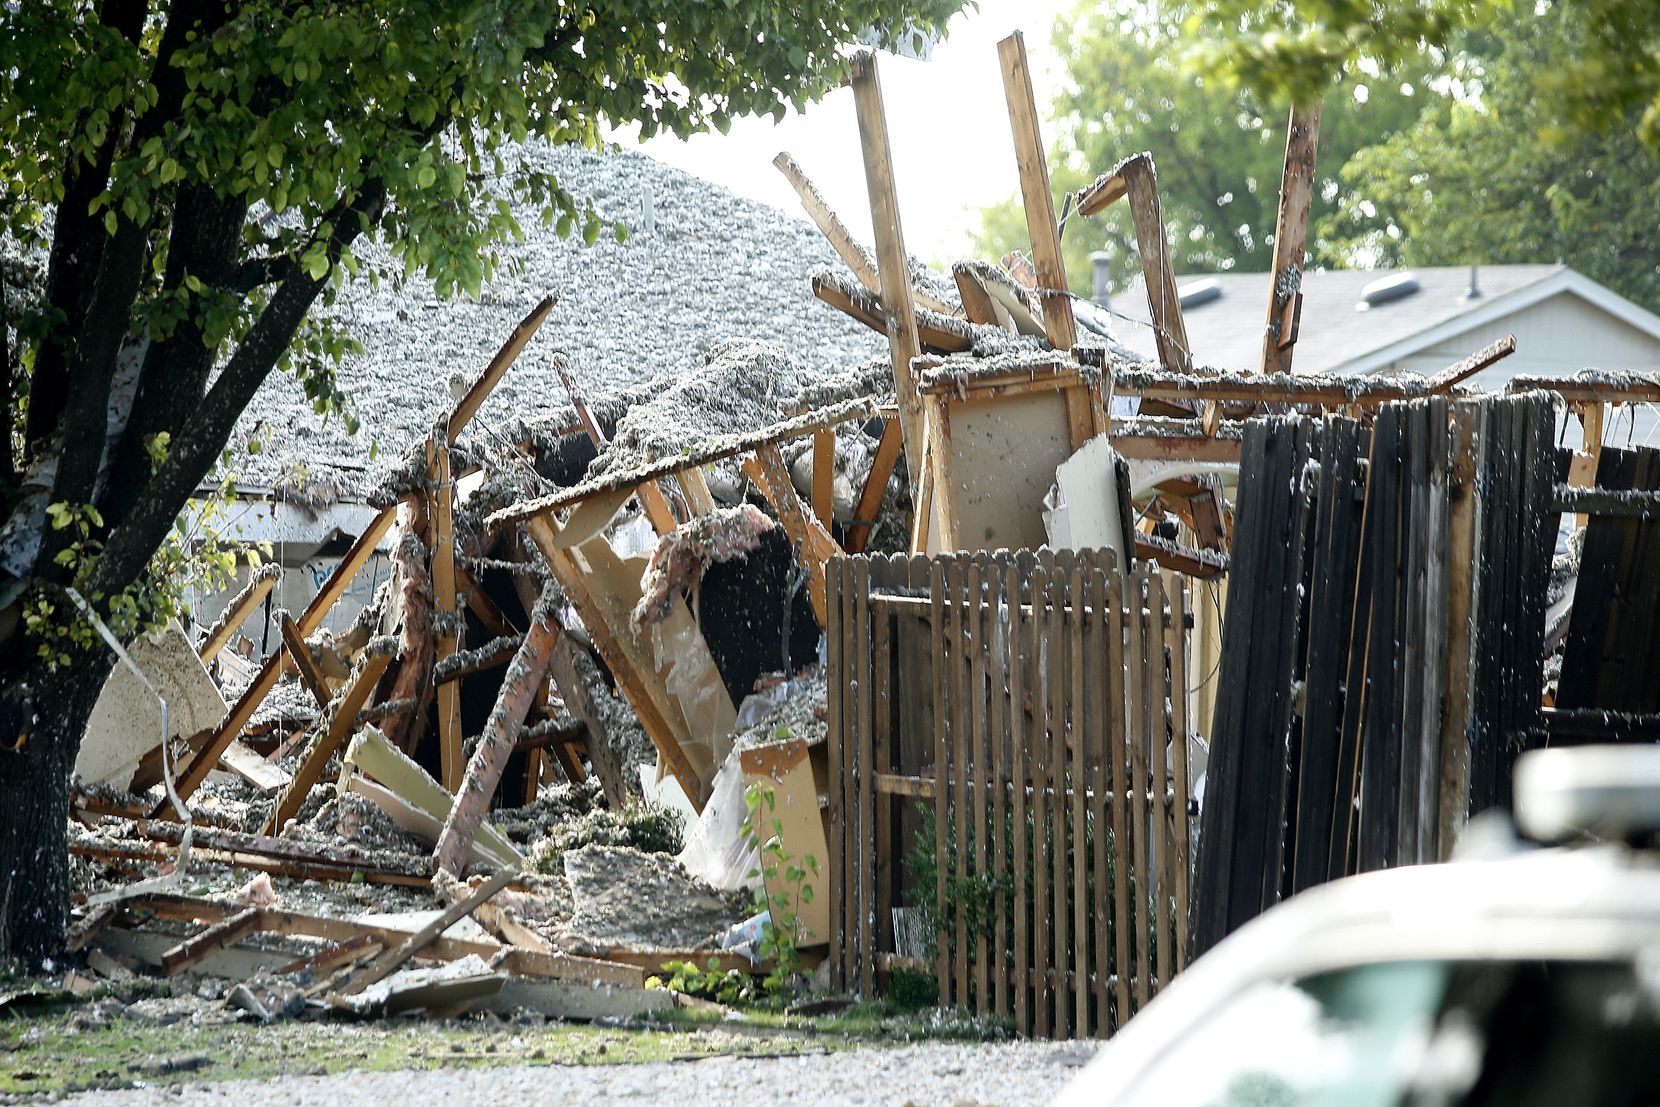 Debris was all that was left on the site of a home explosion Monday.